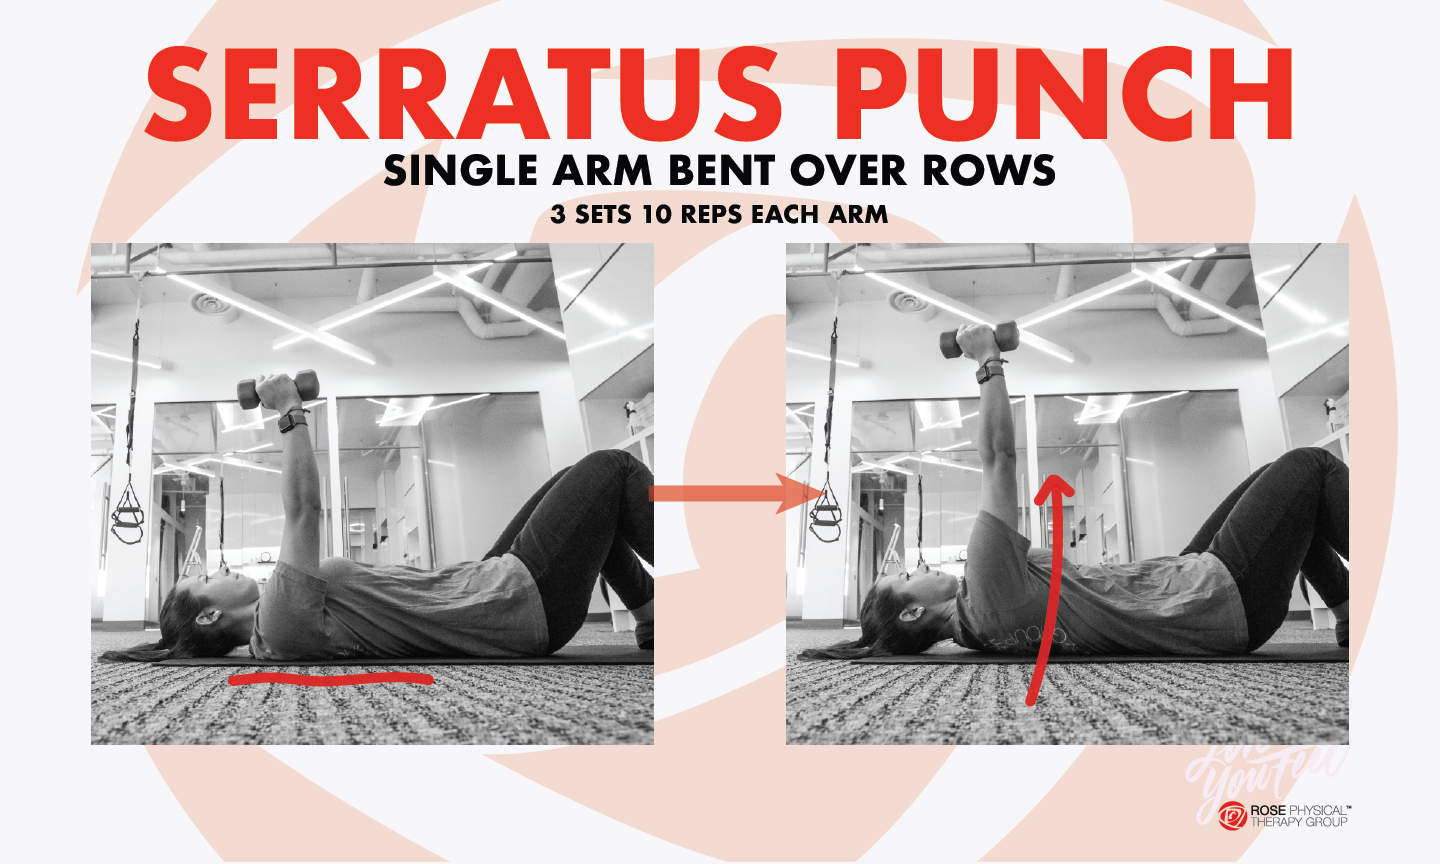 serratus punch rotator cuff shoulder physical therapy